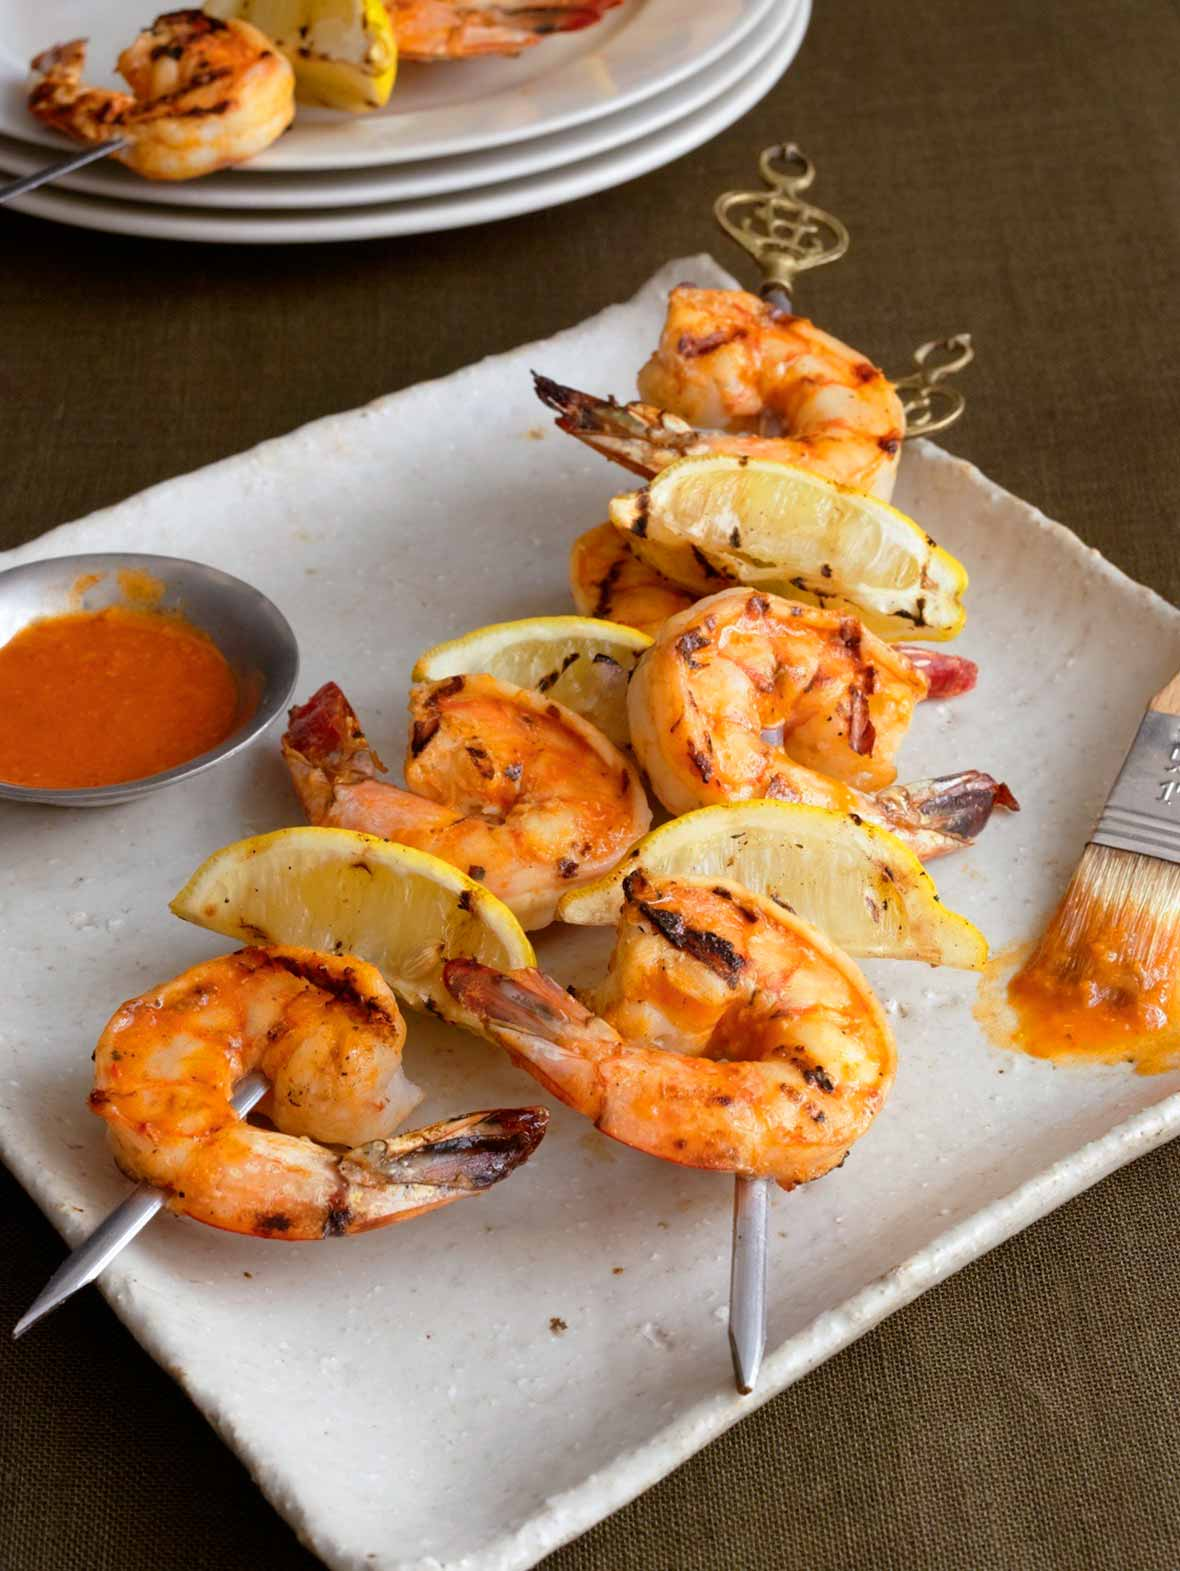 A white square platter with two skewers of grilled Portuguese shrimp with piri piri sauce and lemon wedges, a small dish of piri piri sauce, and a basting brush.